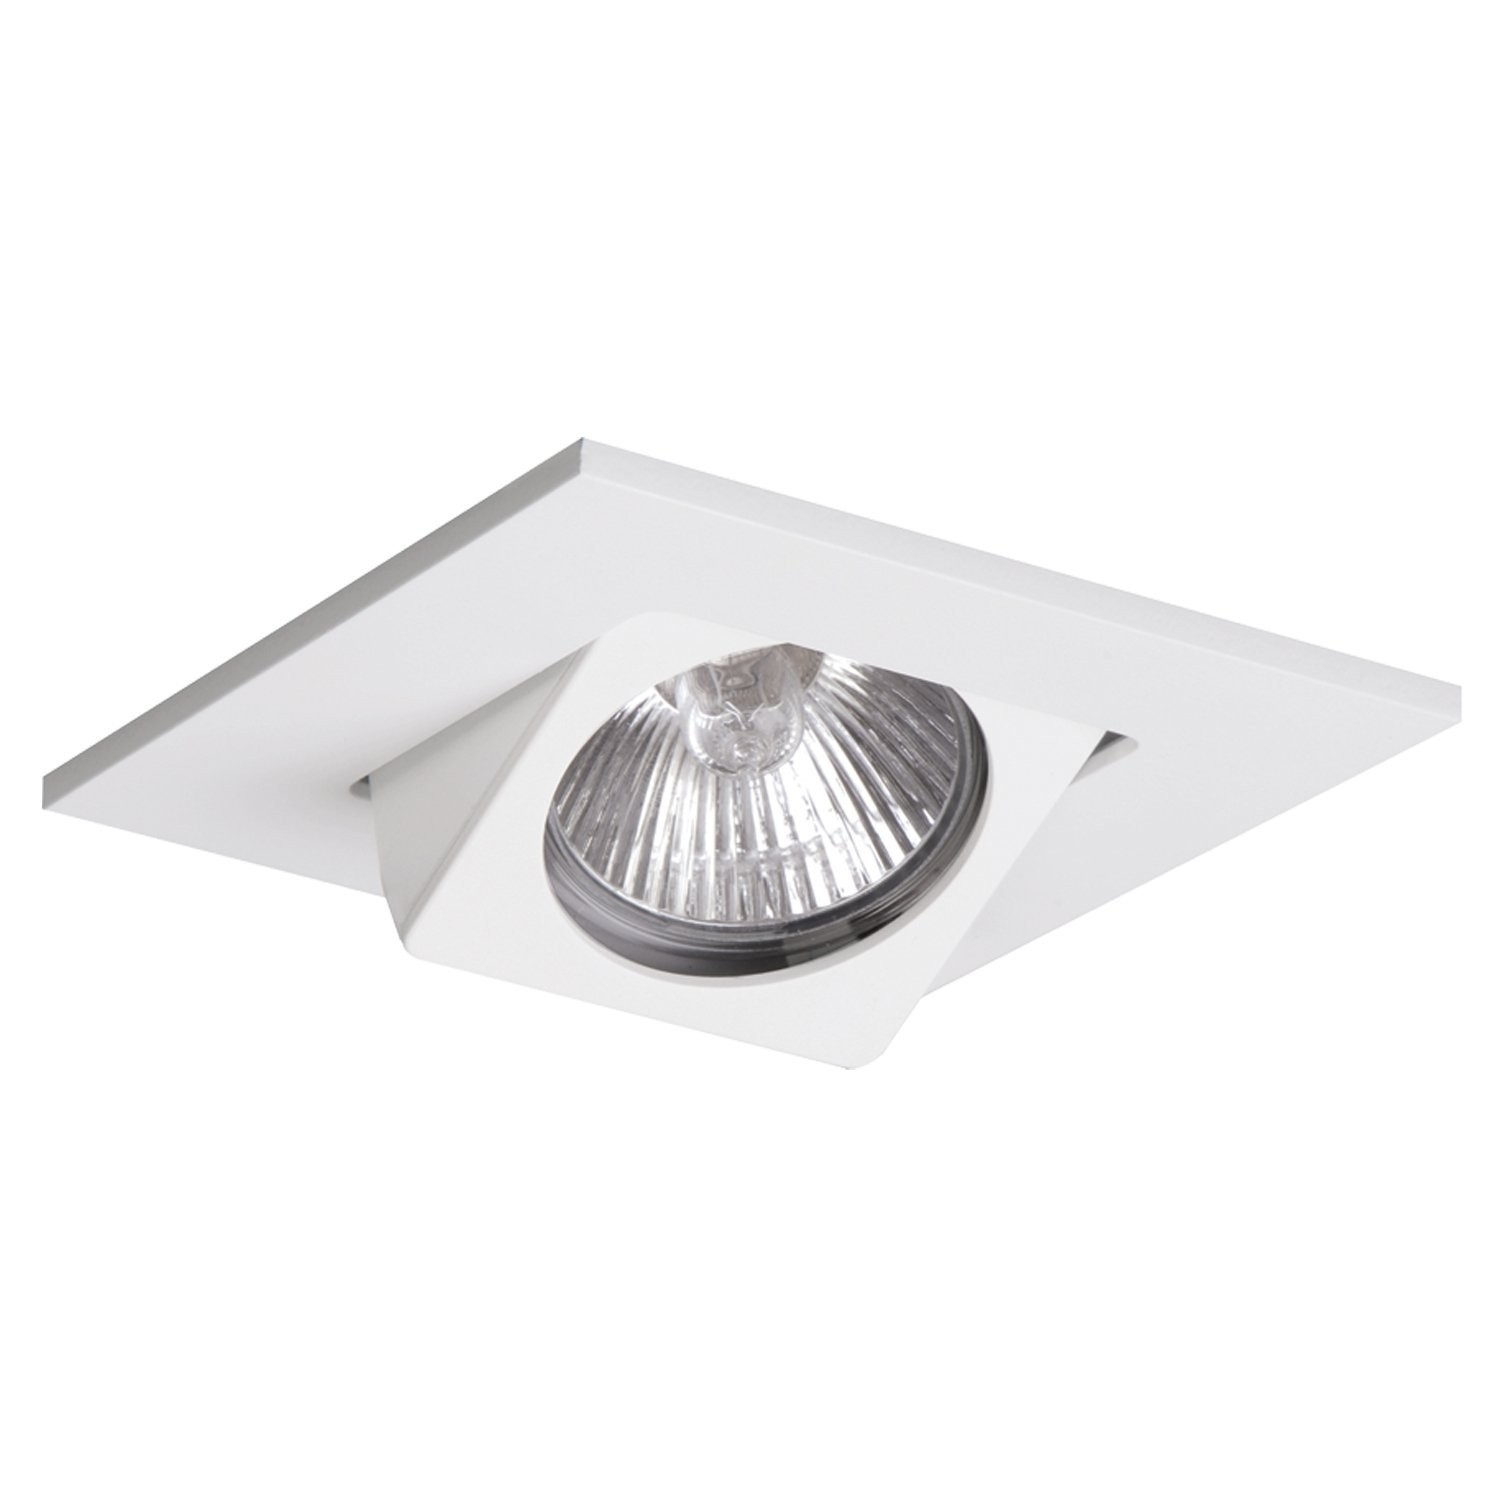 Halo recessed lighting trims westside wholesale halo 3013wh mozeypictures